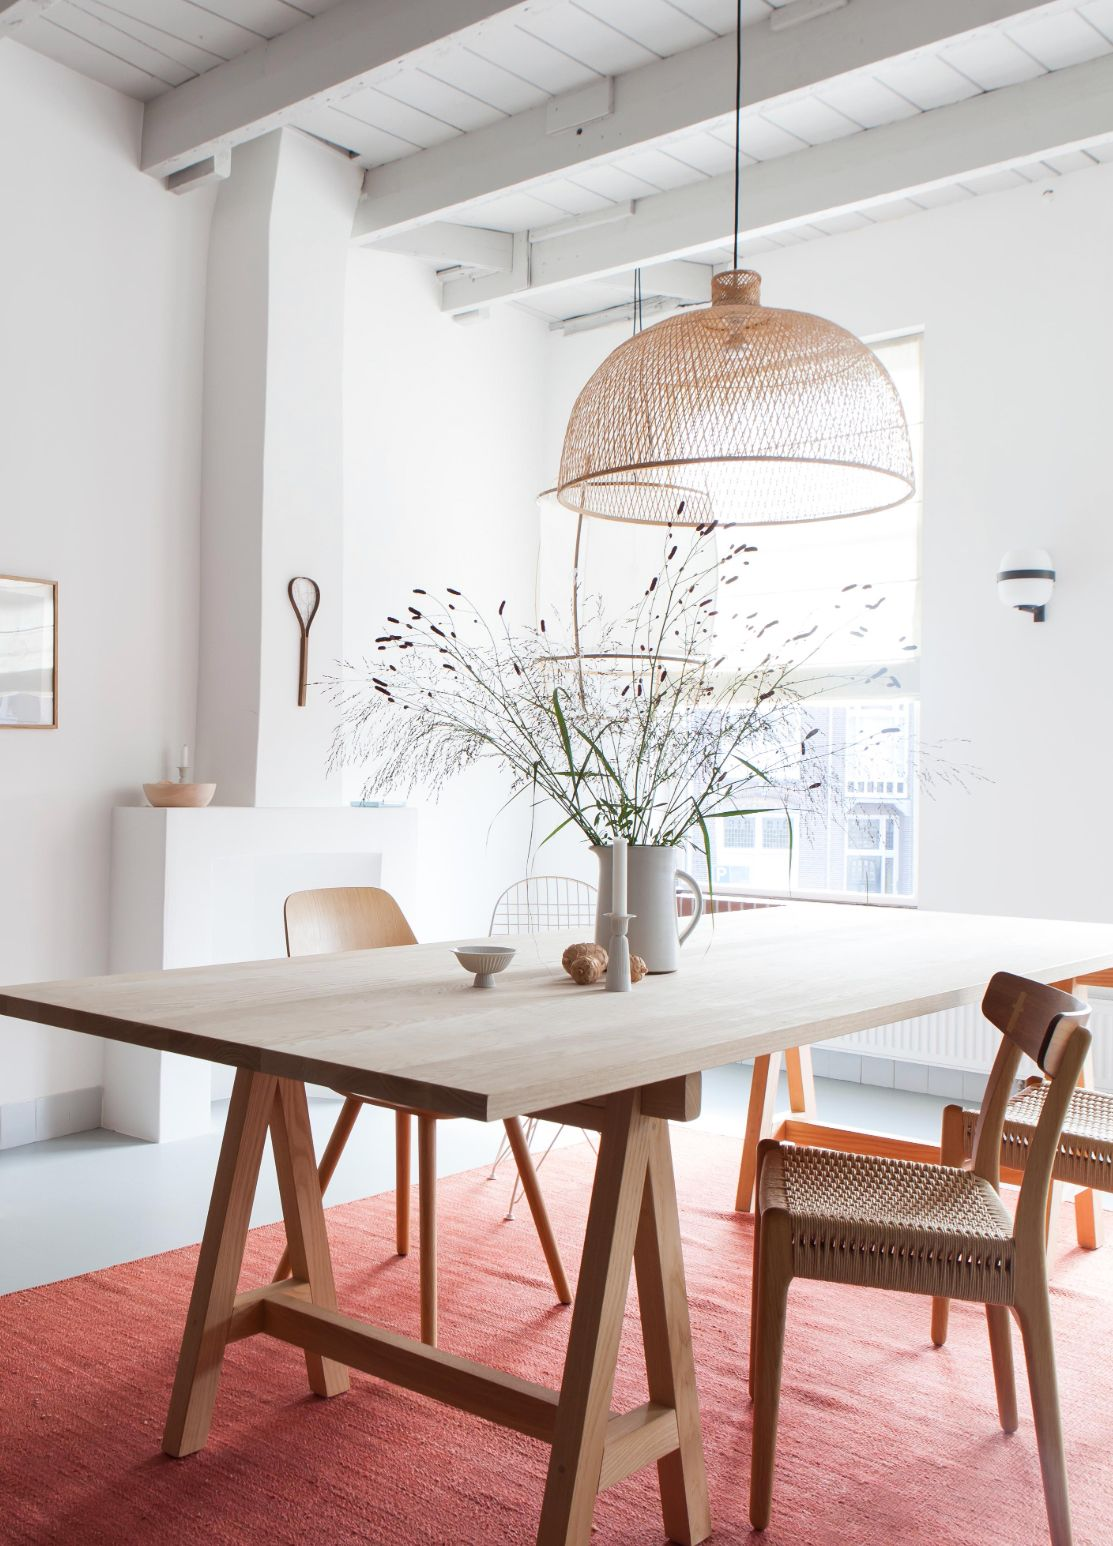 Sawhorse Tables Made Simple Sfgirlbybay In 2020 Scandinavian Dining Room Scandinavian Dining Table Dining Table